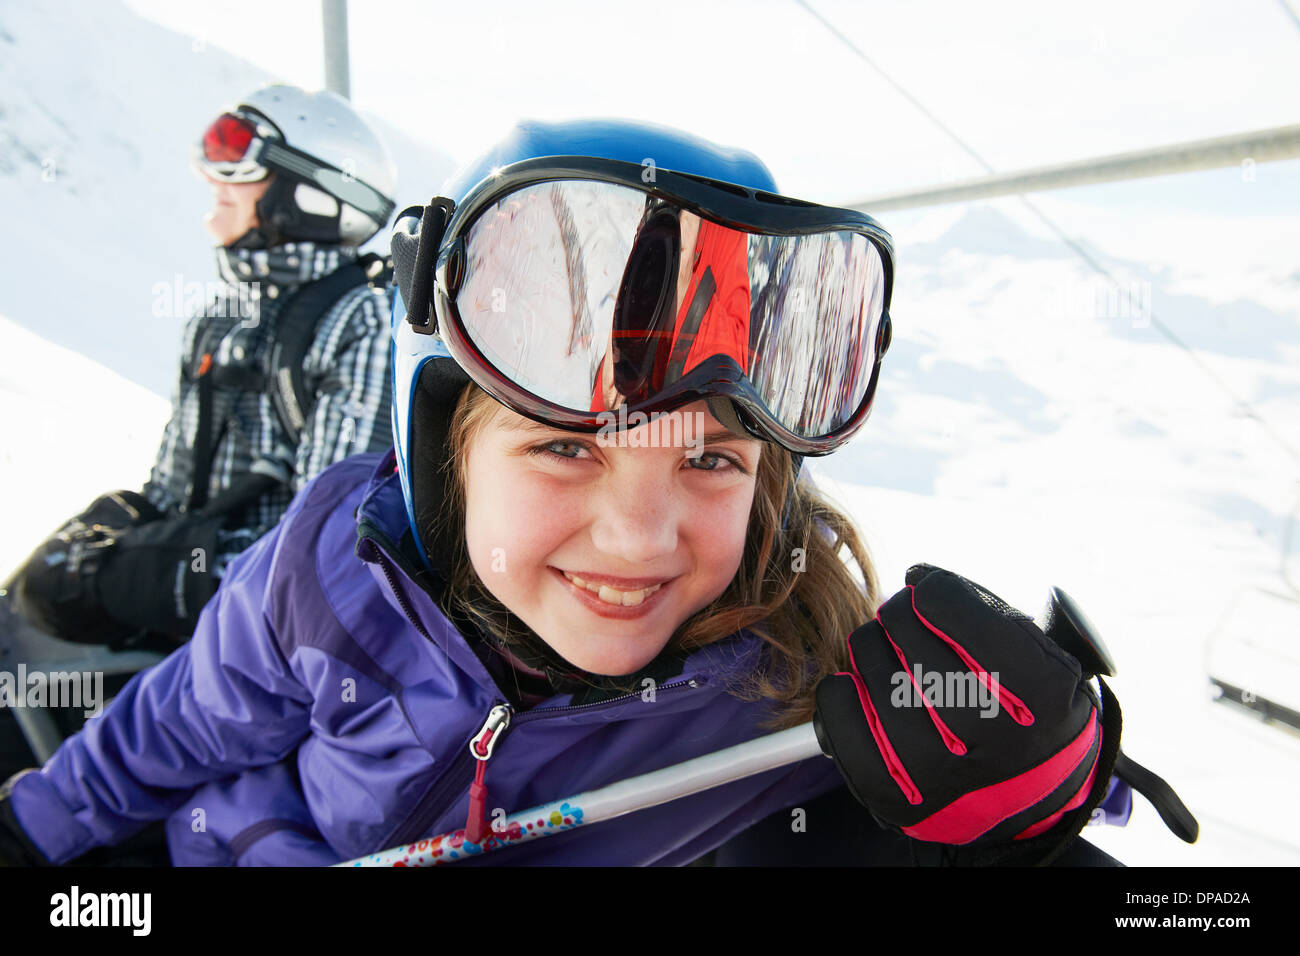 Portrait of young girl on ski lift, Les Arcs, Haute-Savoie, France - Stock Image